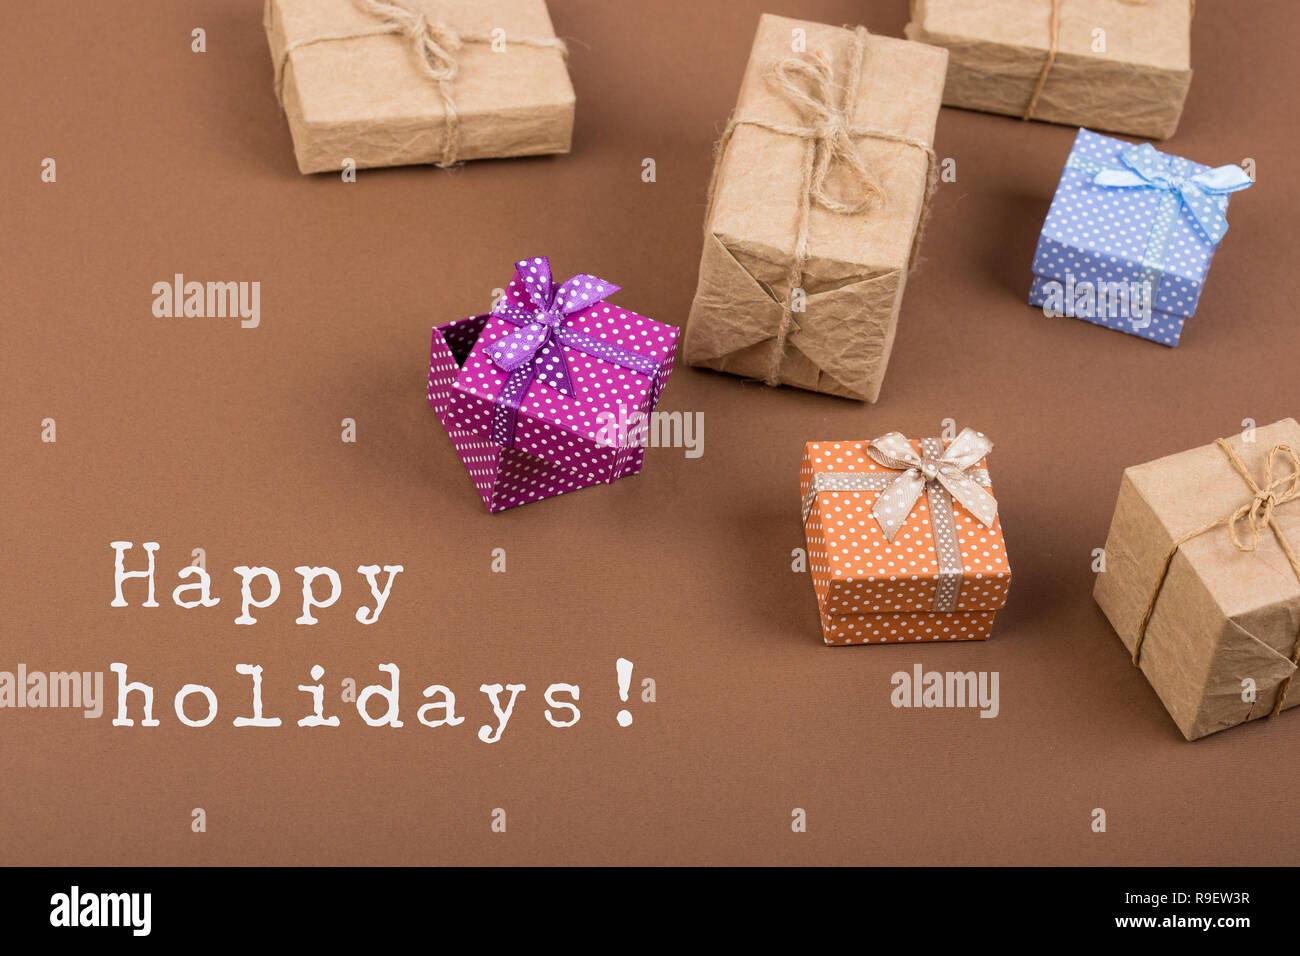 Handmade Gift Boxes On Brown Paper Background And Text Happy